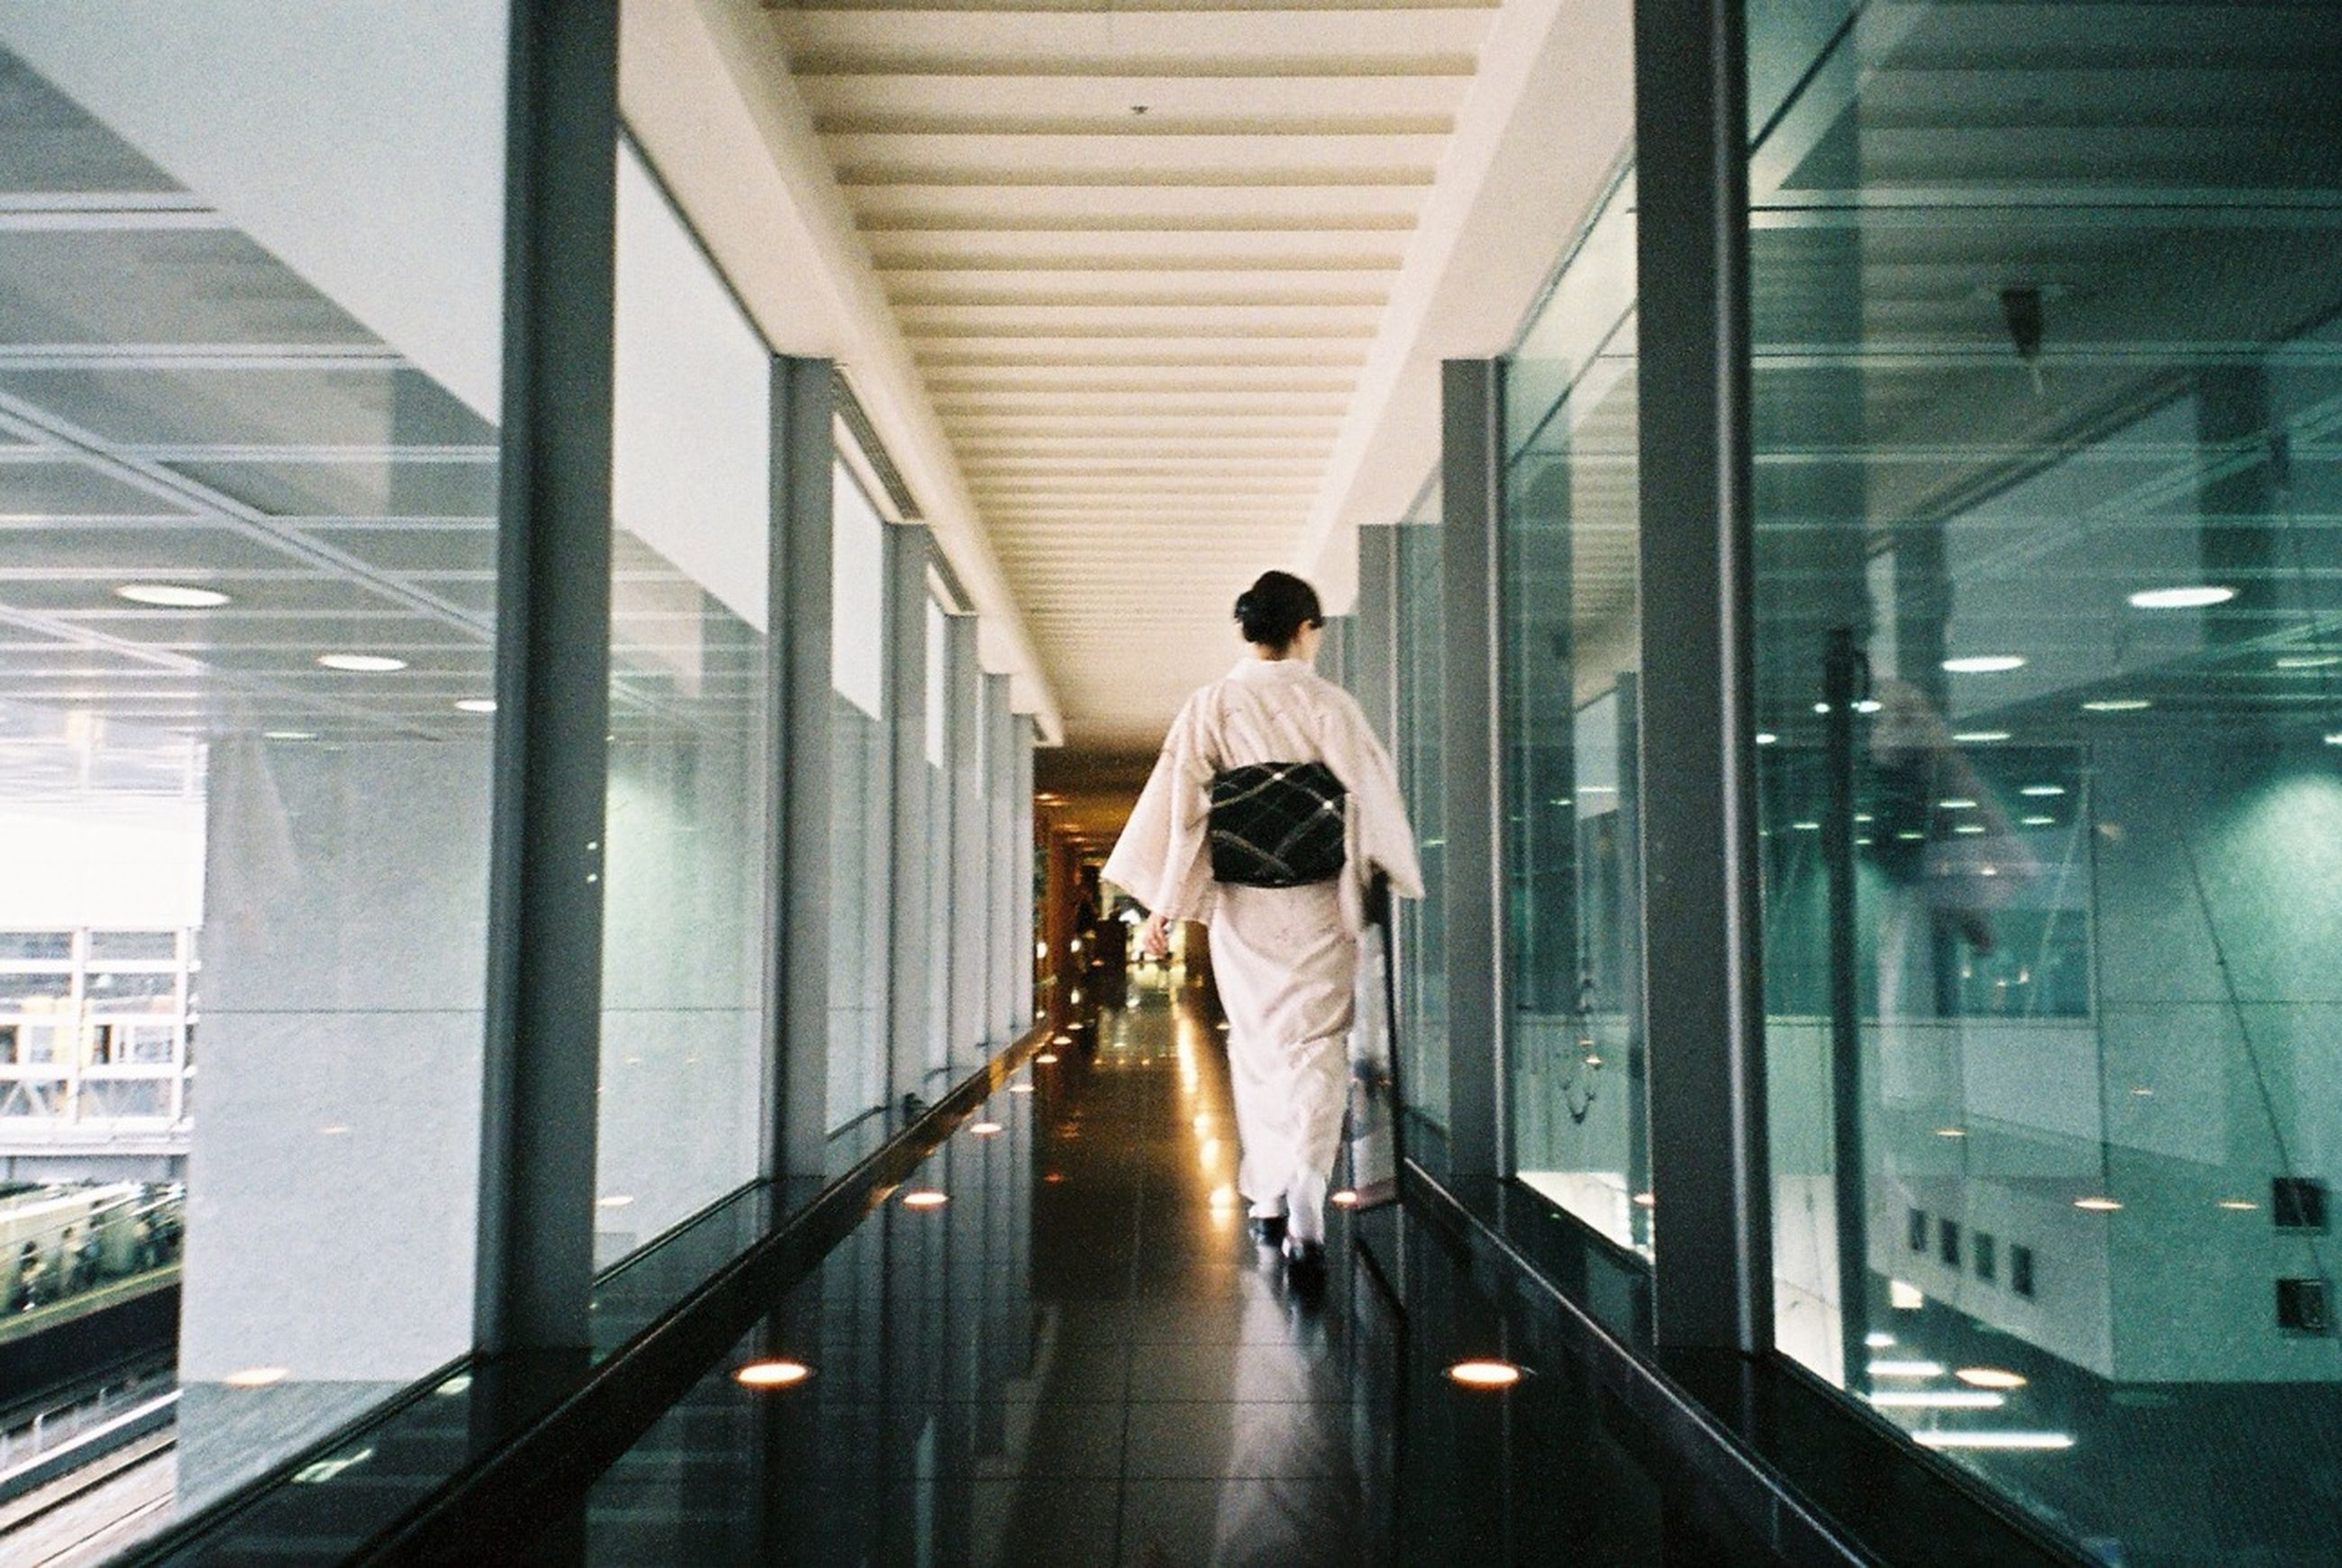 indoors, lifestyles, architecture, full length, built structure, reflection, standing, corridor, rear view, leisure activity, casual clothing, young adult, walking, person, modern, window, ceiling, young women